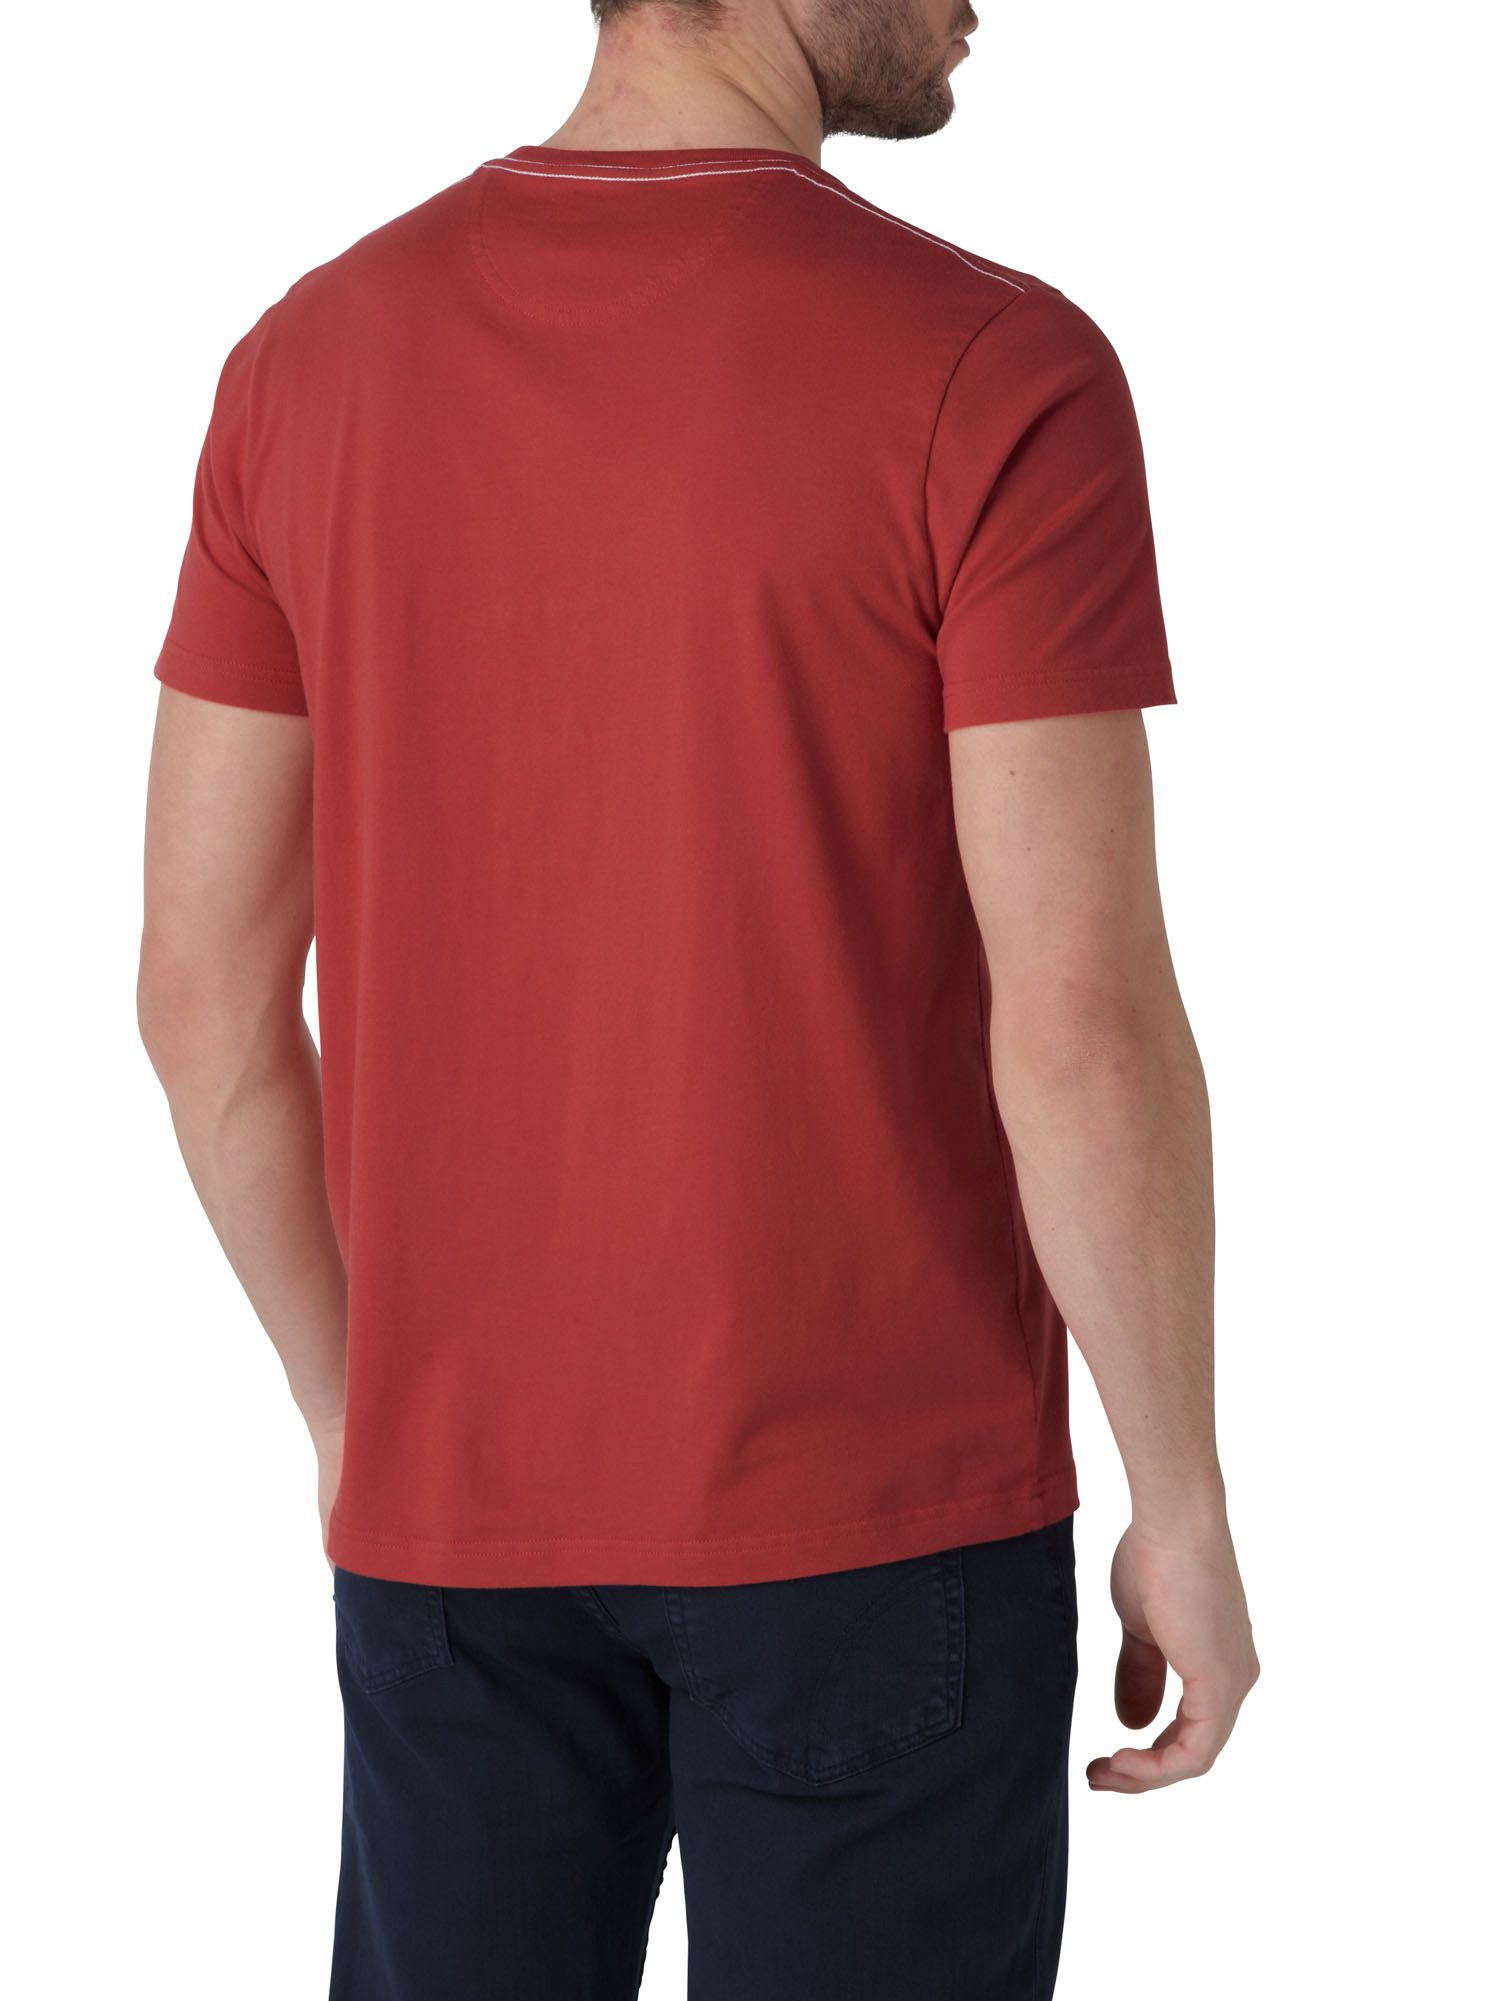 lloyd single men Buy the latest henri lloyd t-shirts for men at house of fraser free delivery on orders over £50 or buy & collect in store.